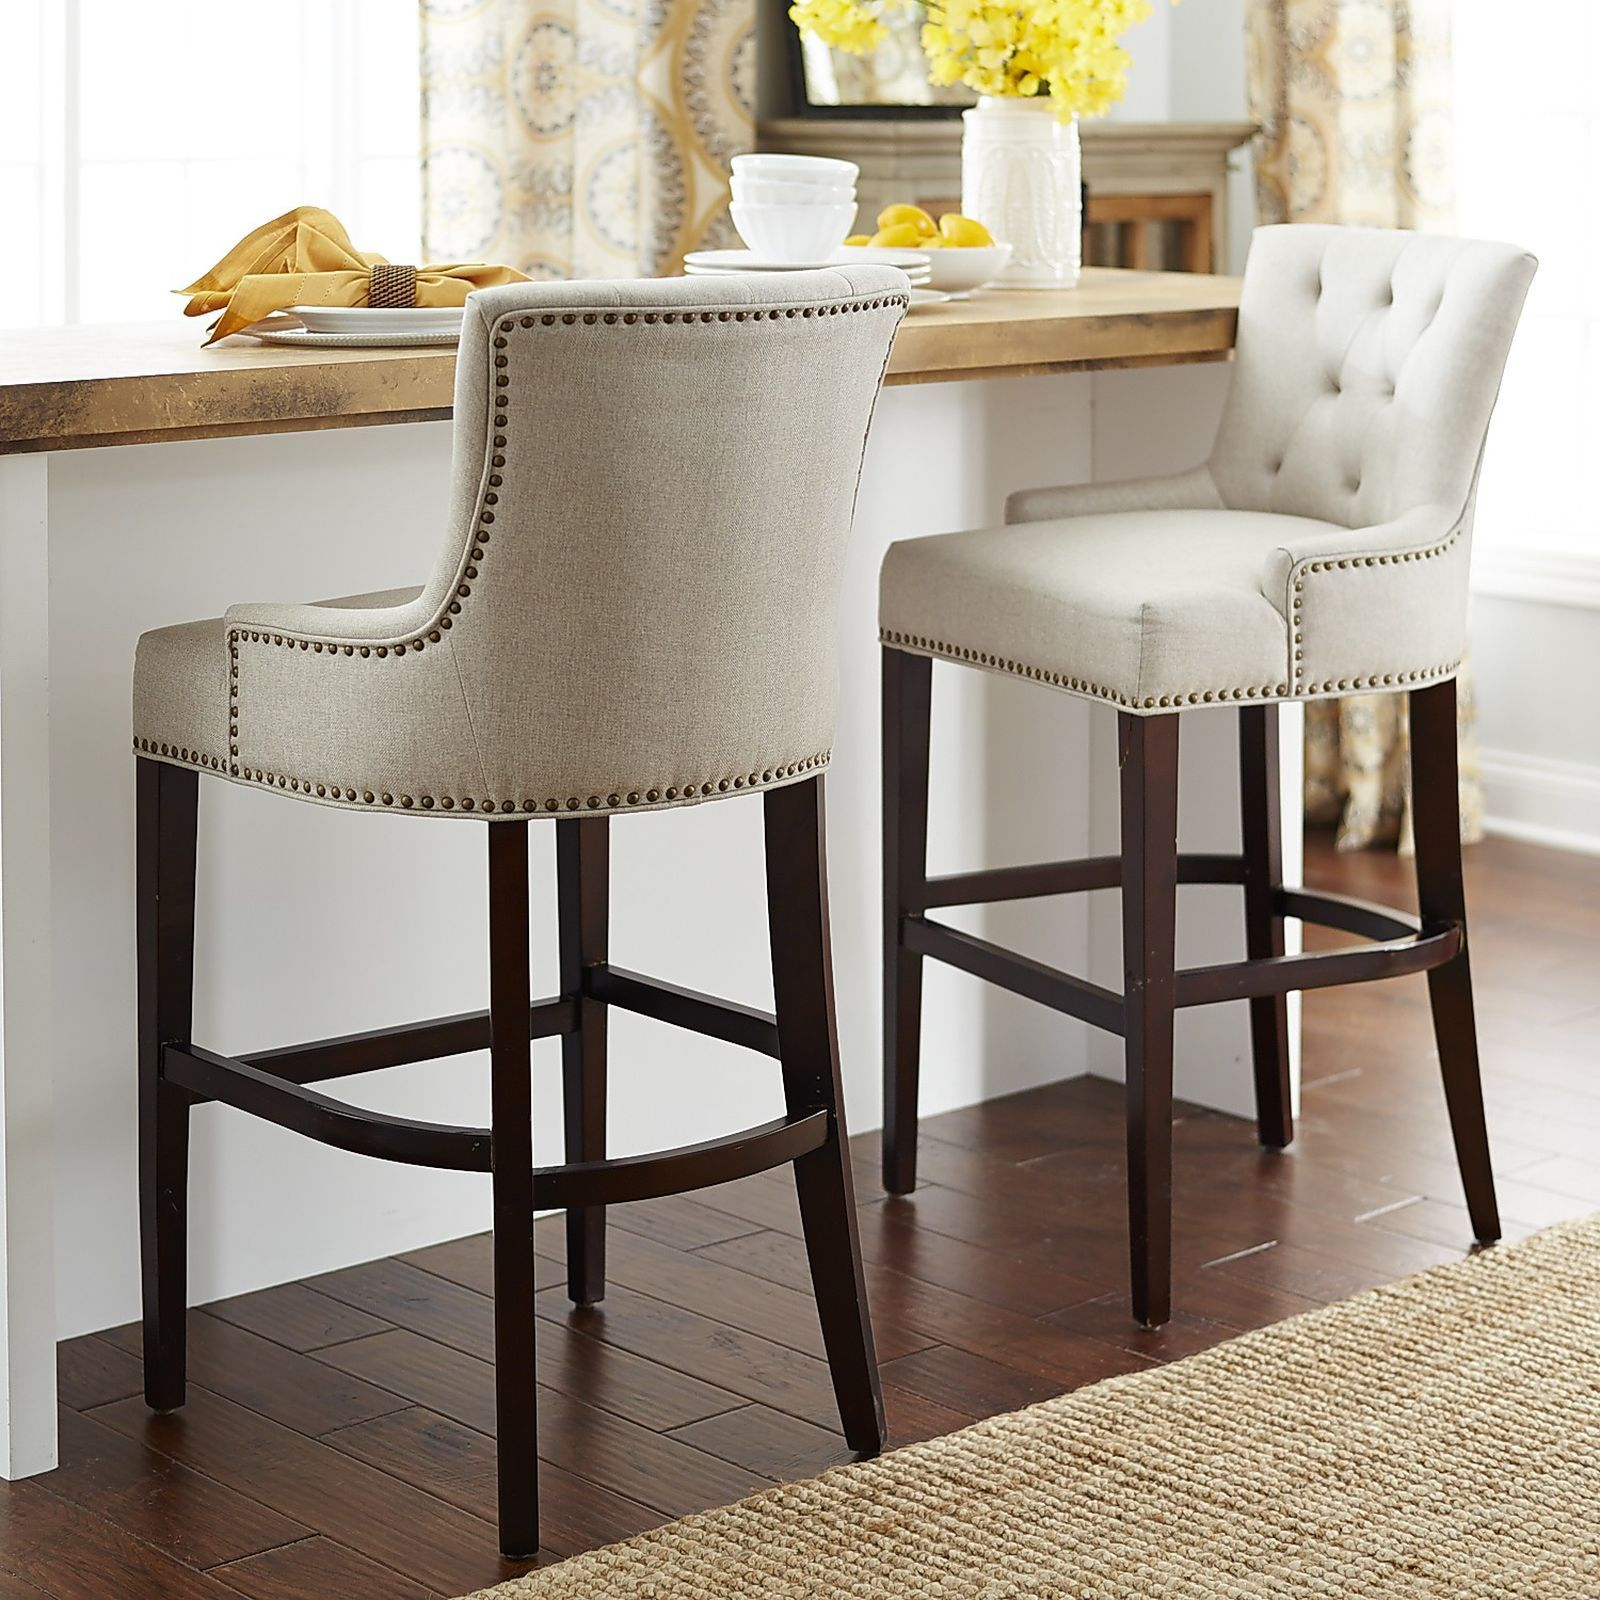 Kitchen Breakfast Bar And Stools Part - 46: Bar Stool